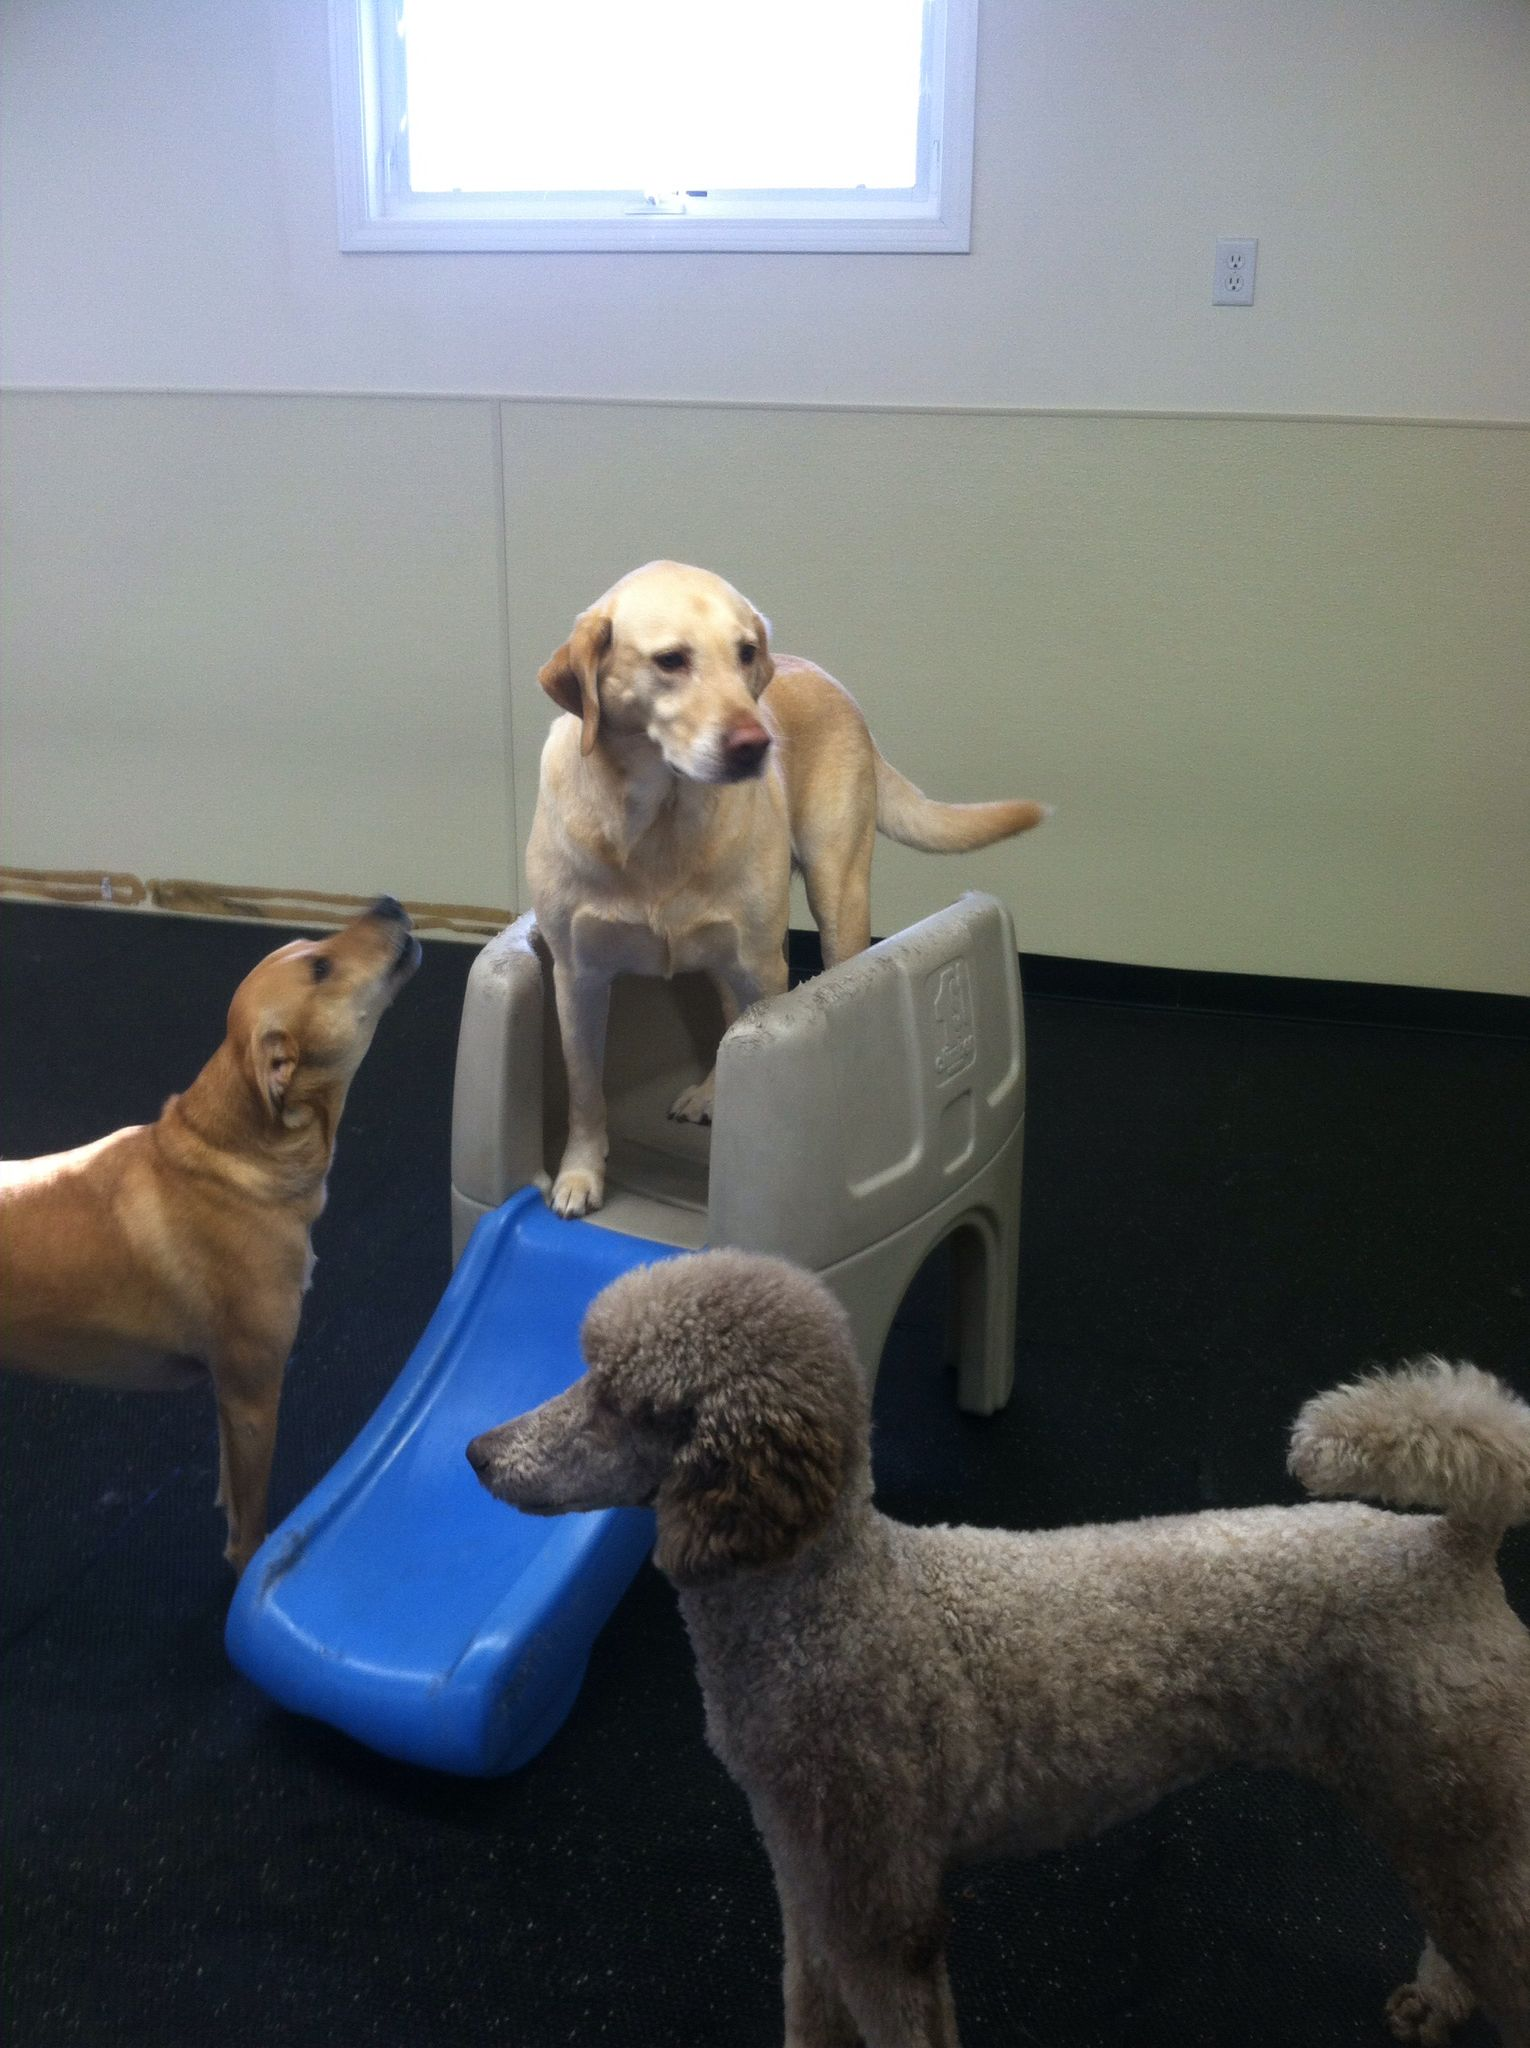 """""""Hurry up Sully! Go down the slide!"""" #MyTurn #DogGames #IndoorDaycare #FunTimes"""